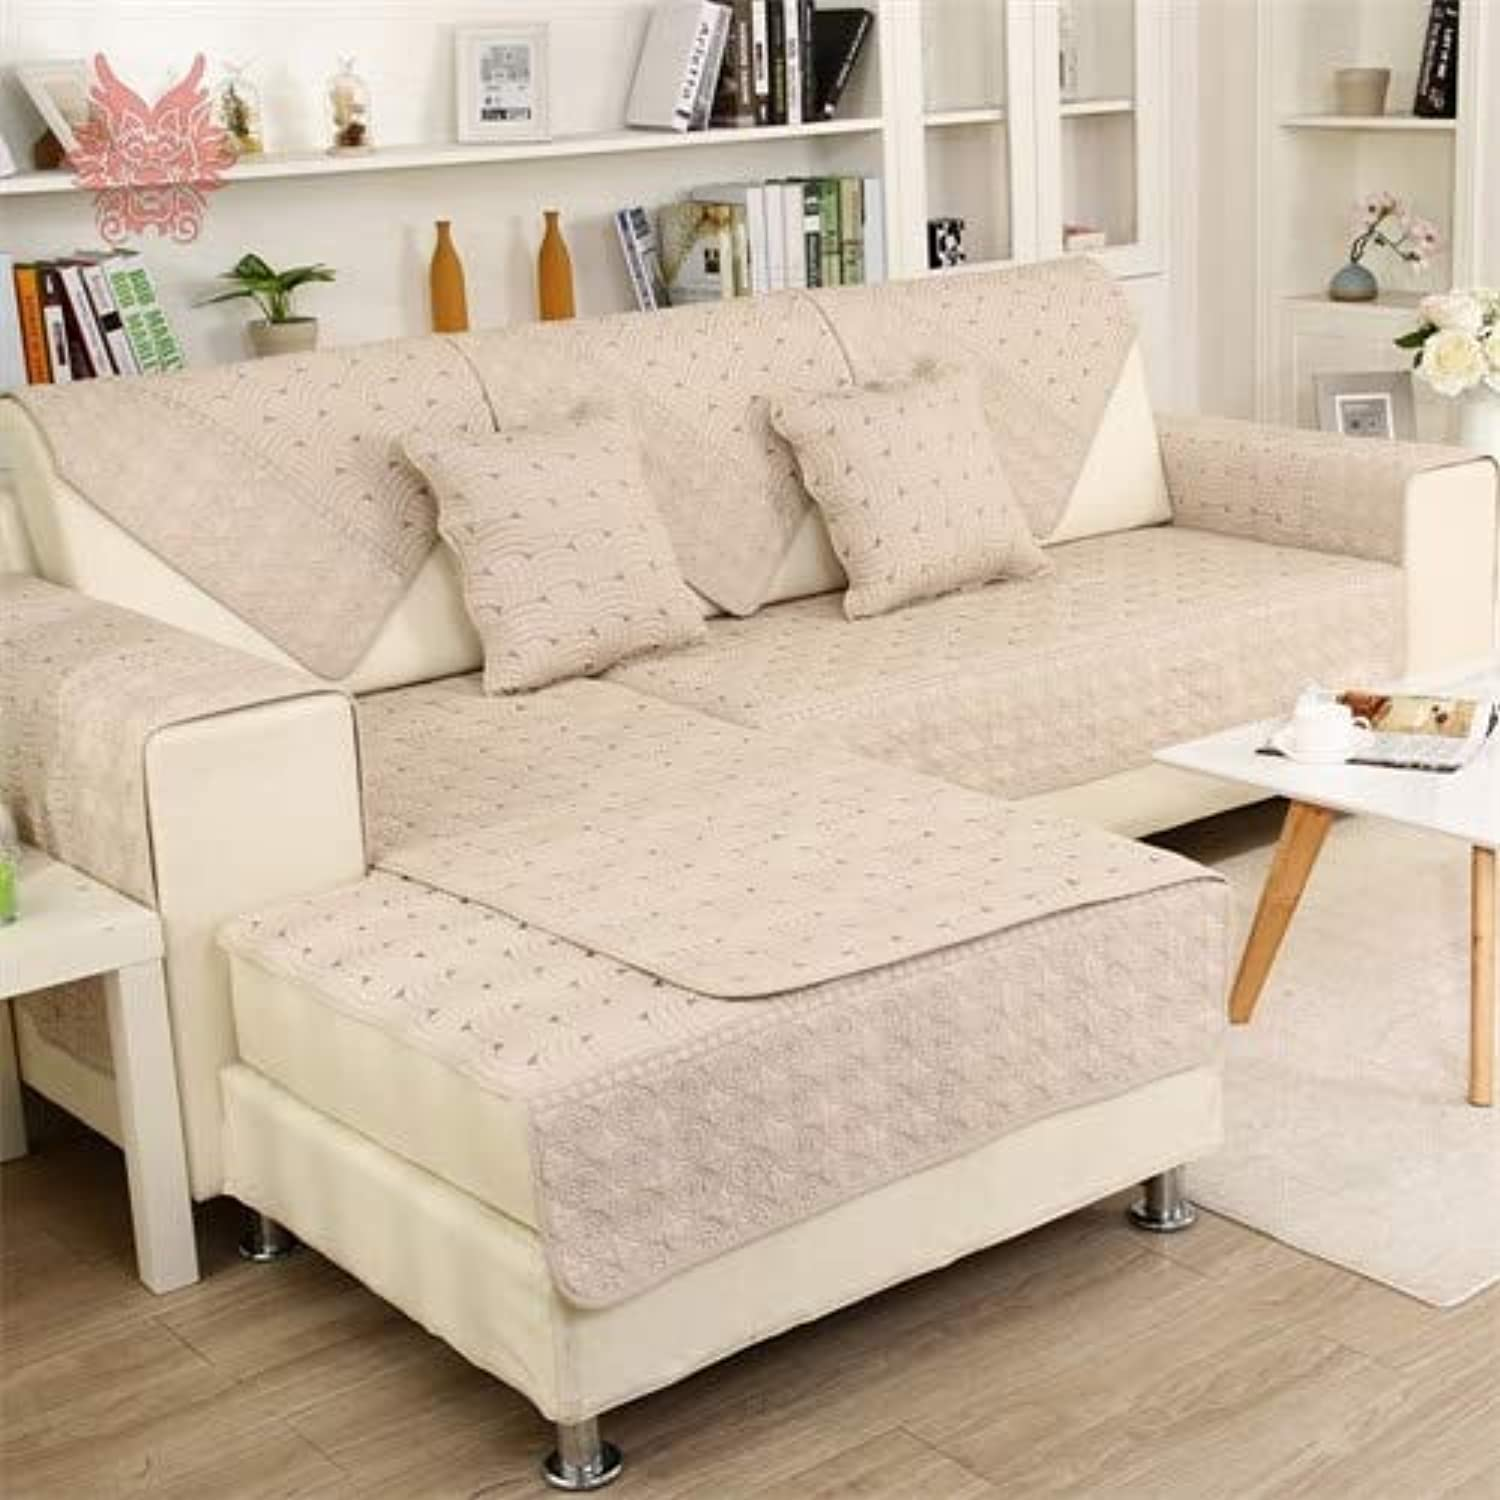 Beige Grey Stripe Embroidery Quilted Cotton Sofa Cover for lig Room Slip canape Couch niture SP5073   Light per pic, 90cm90cm